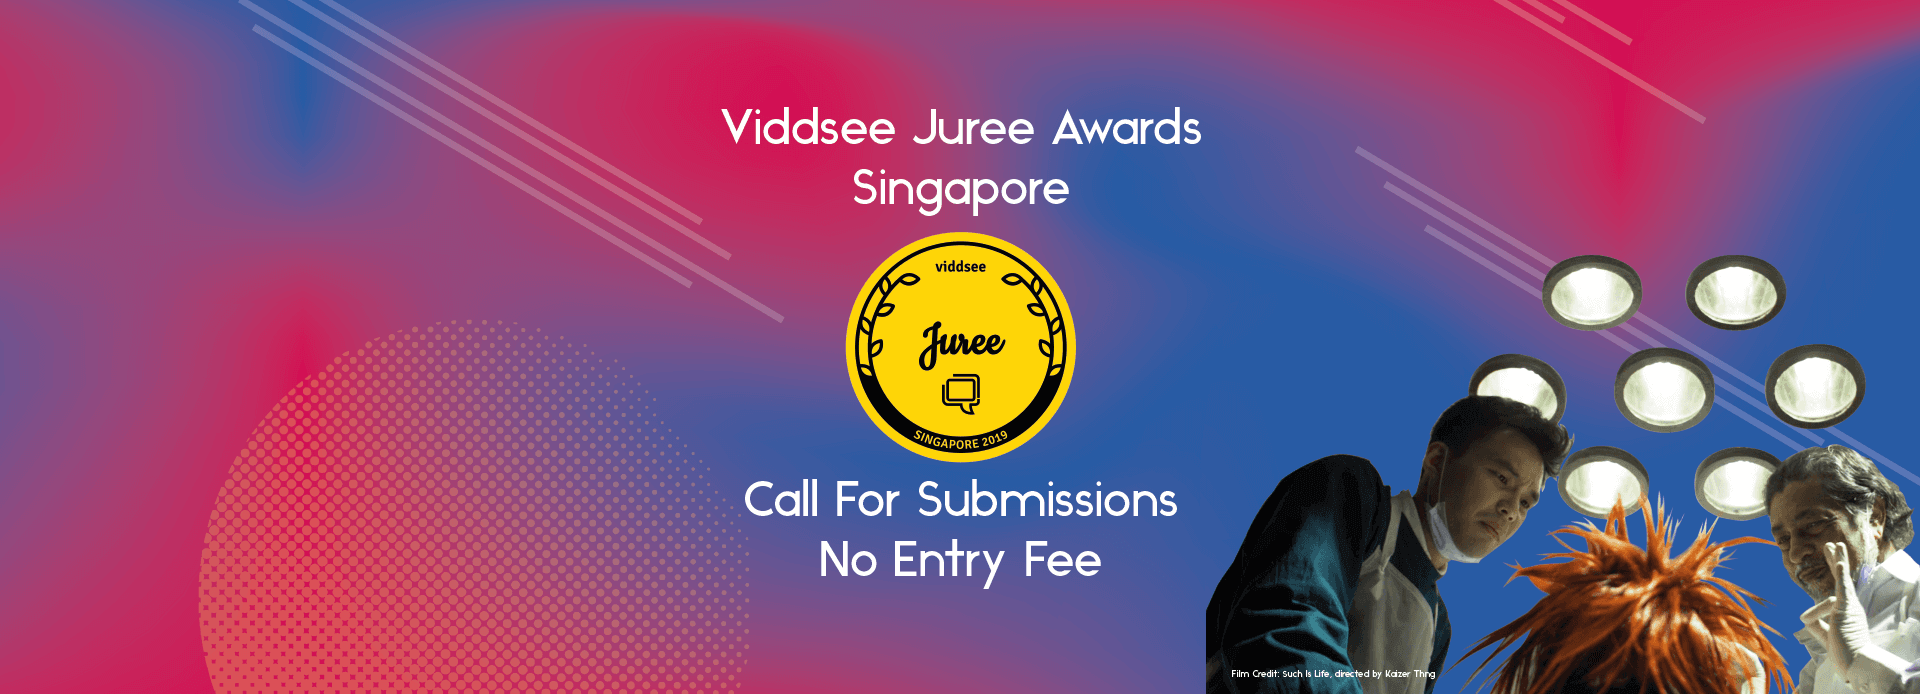 Viddsee Juree Singapore 2019 Submissions Guidelines | Viddsee